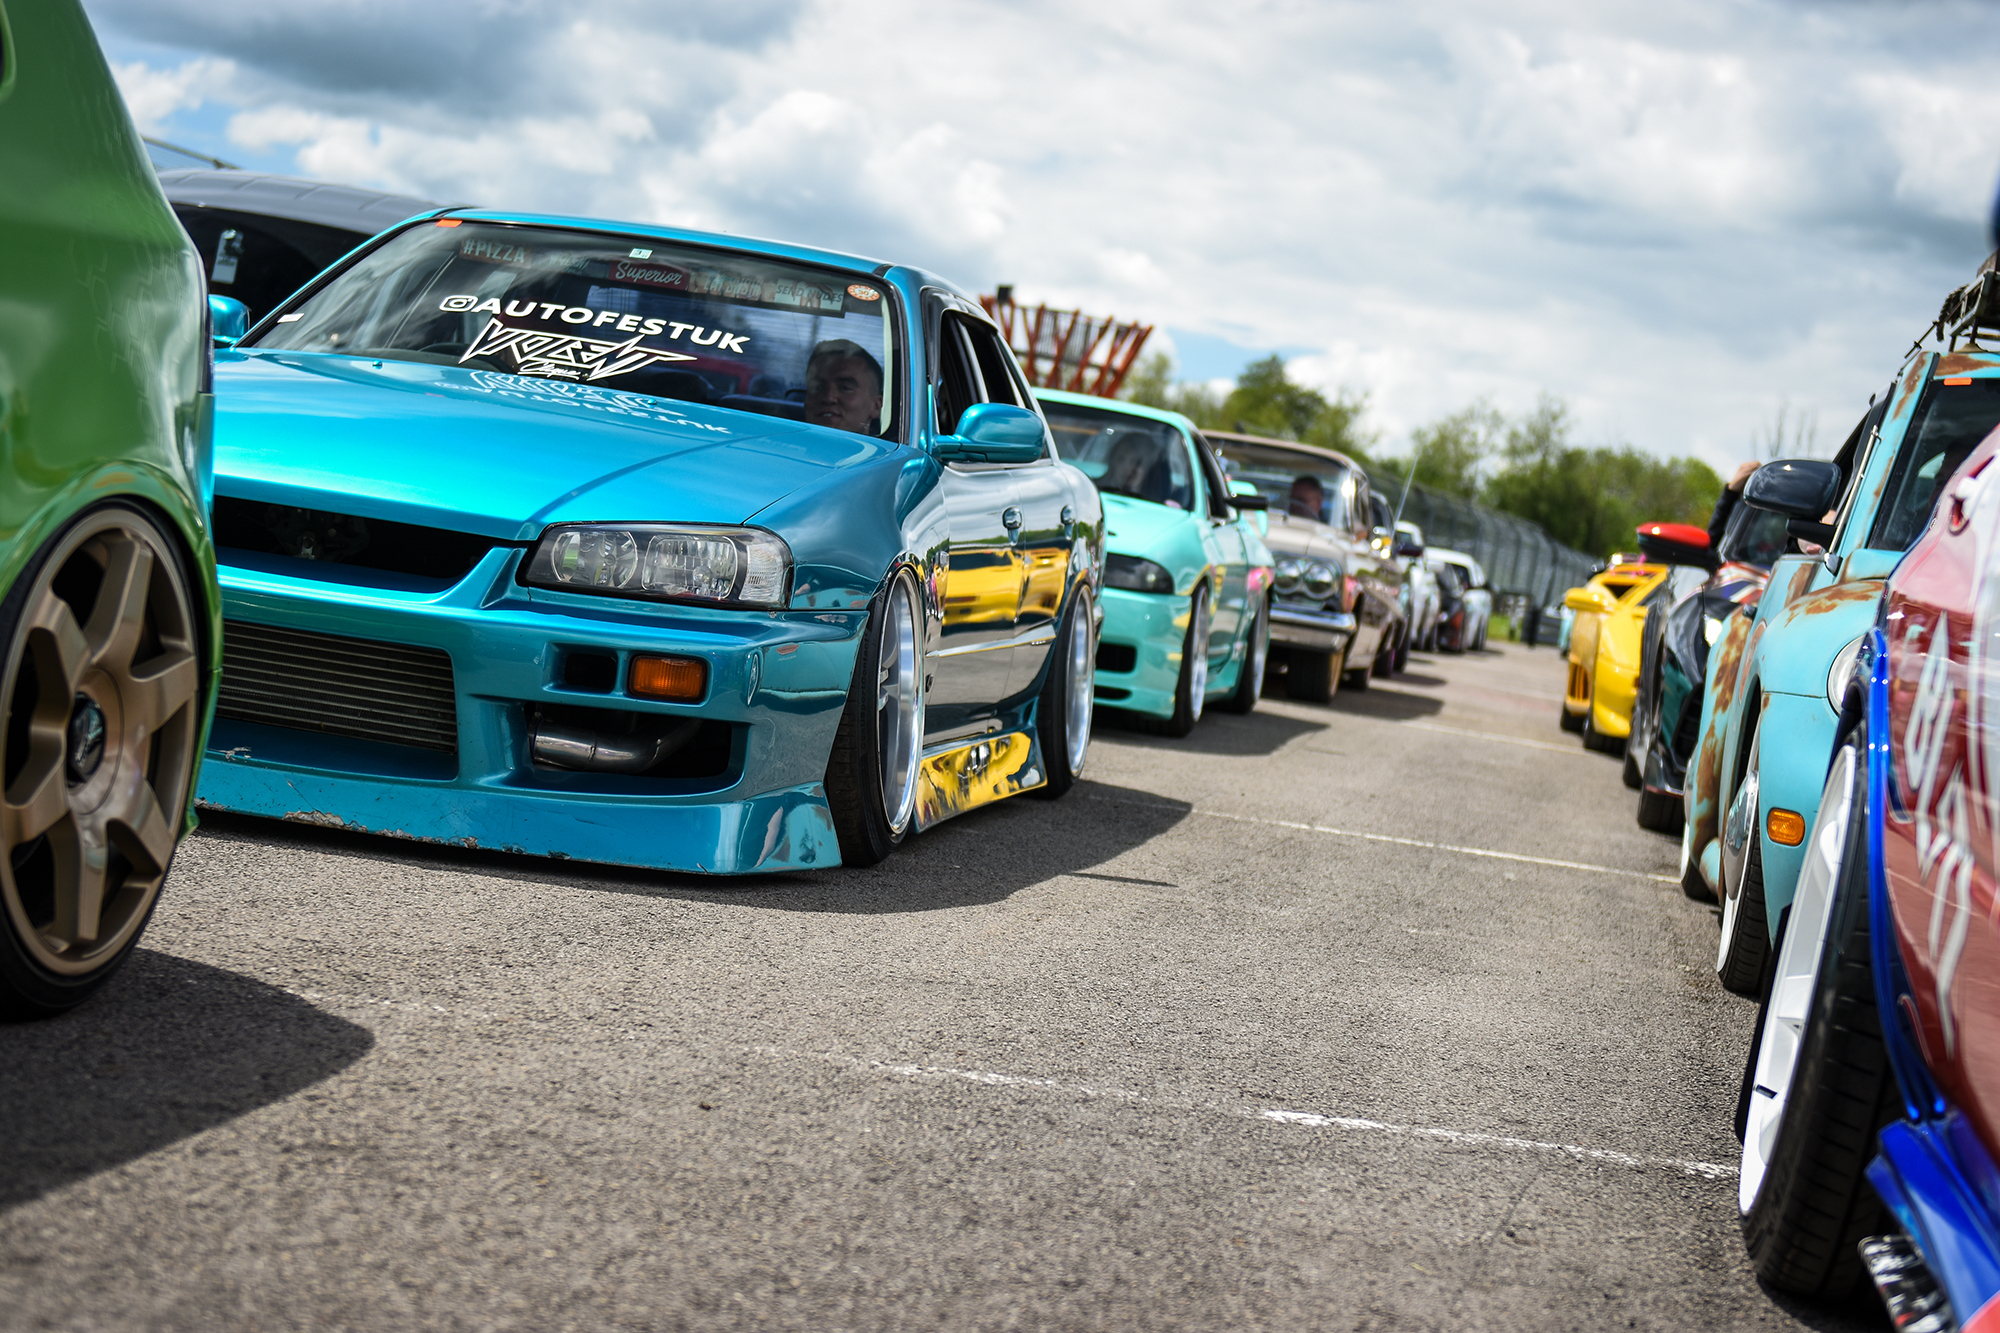 SPRING ACTION DAY SIGNIFIES A WELCOME RETURN FOR CAR SHOWS